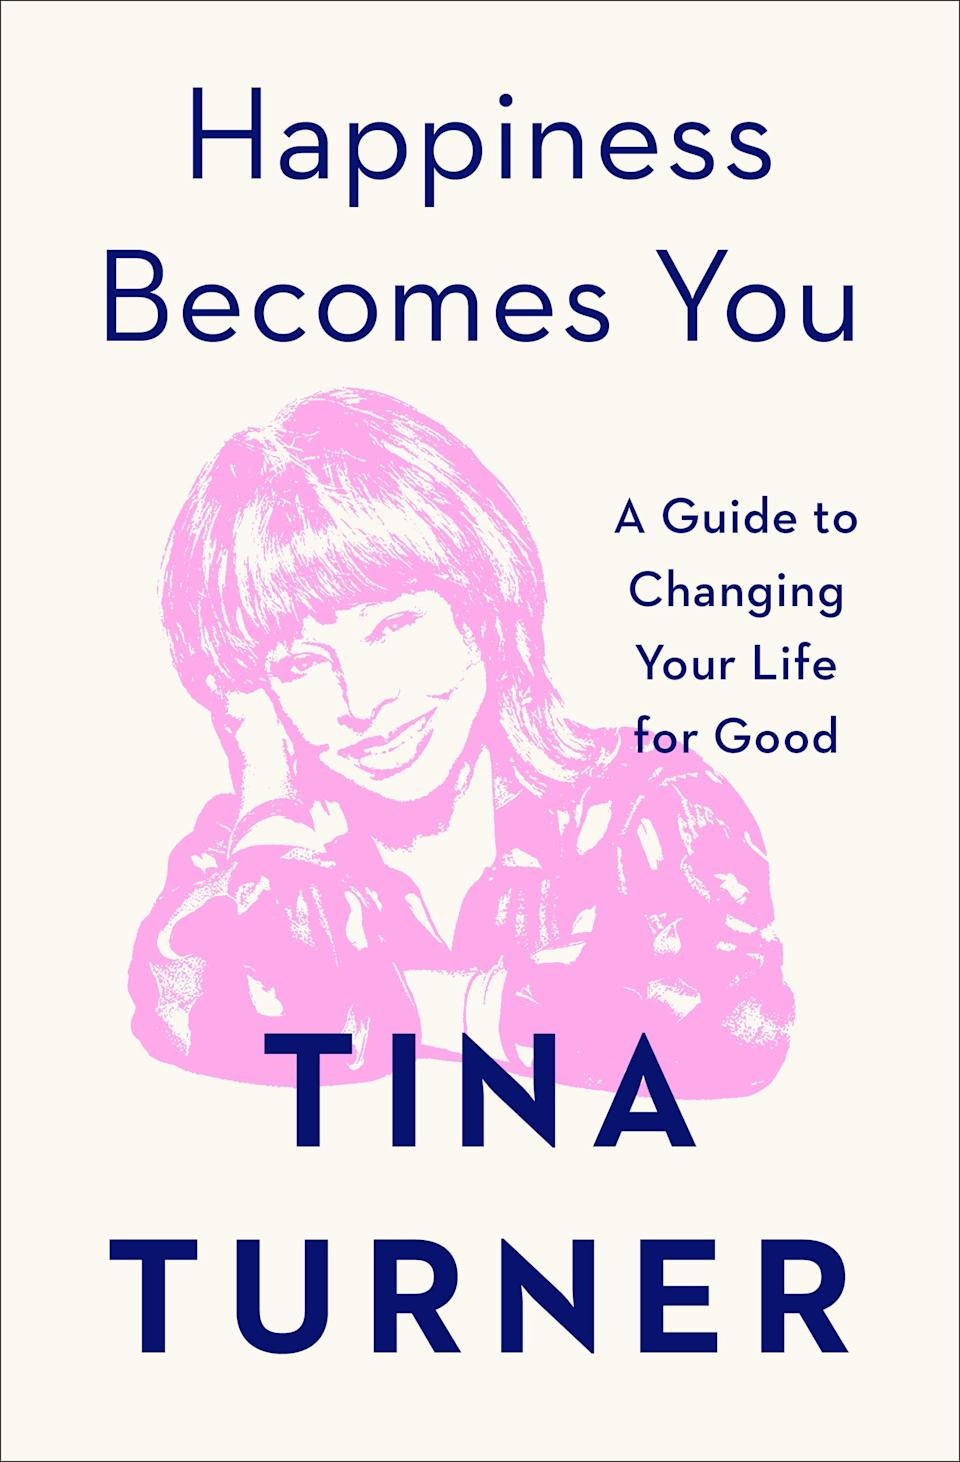 Happiness Becomes You is published by Atria, a division of Simon & Schuster, Inc. Copyright © 2020 by Tina Turner.